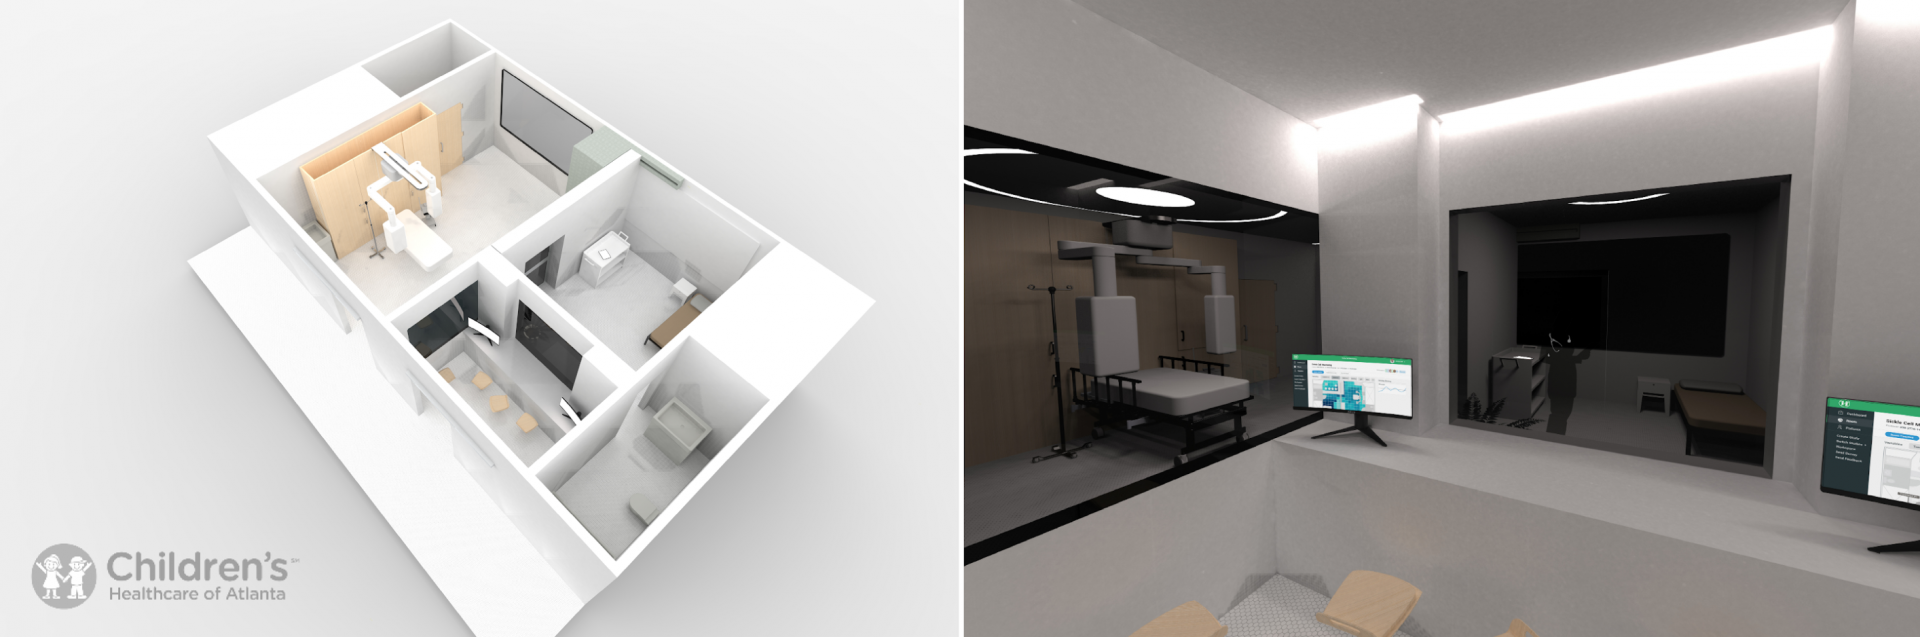 Two digital renders, one is of a 3D floor plan and the other is of an interior room.